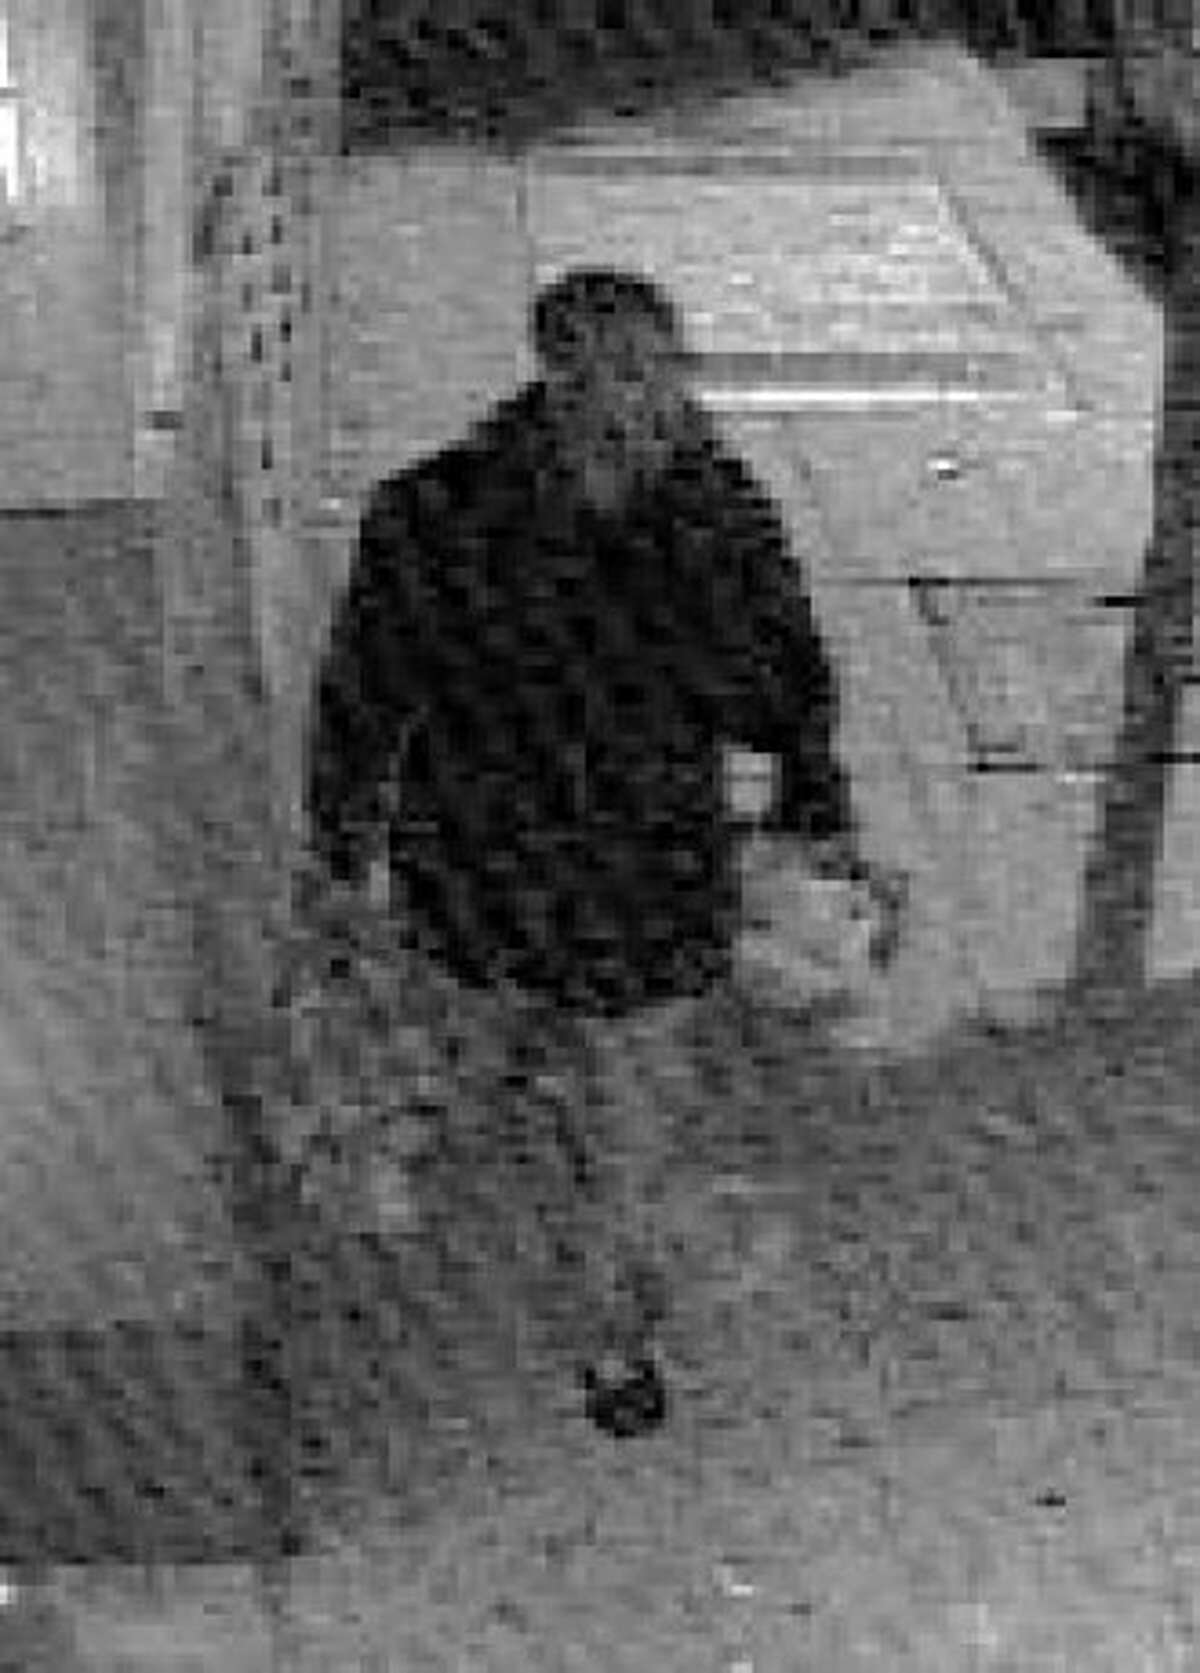 San Francisco police are asking the publics help in identifying a person of interest in two separate sexual assault cases which occurred along the 24th Street corridor in the City's Mission District. One incident occurred in November and another on today's date. In these cases both victims were attacked by a suspect identified as a black male, mid 30's, 5'9